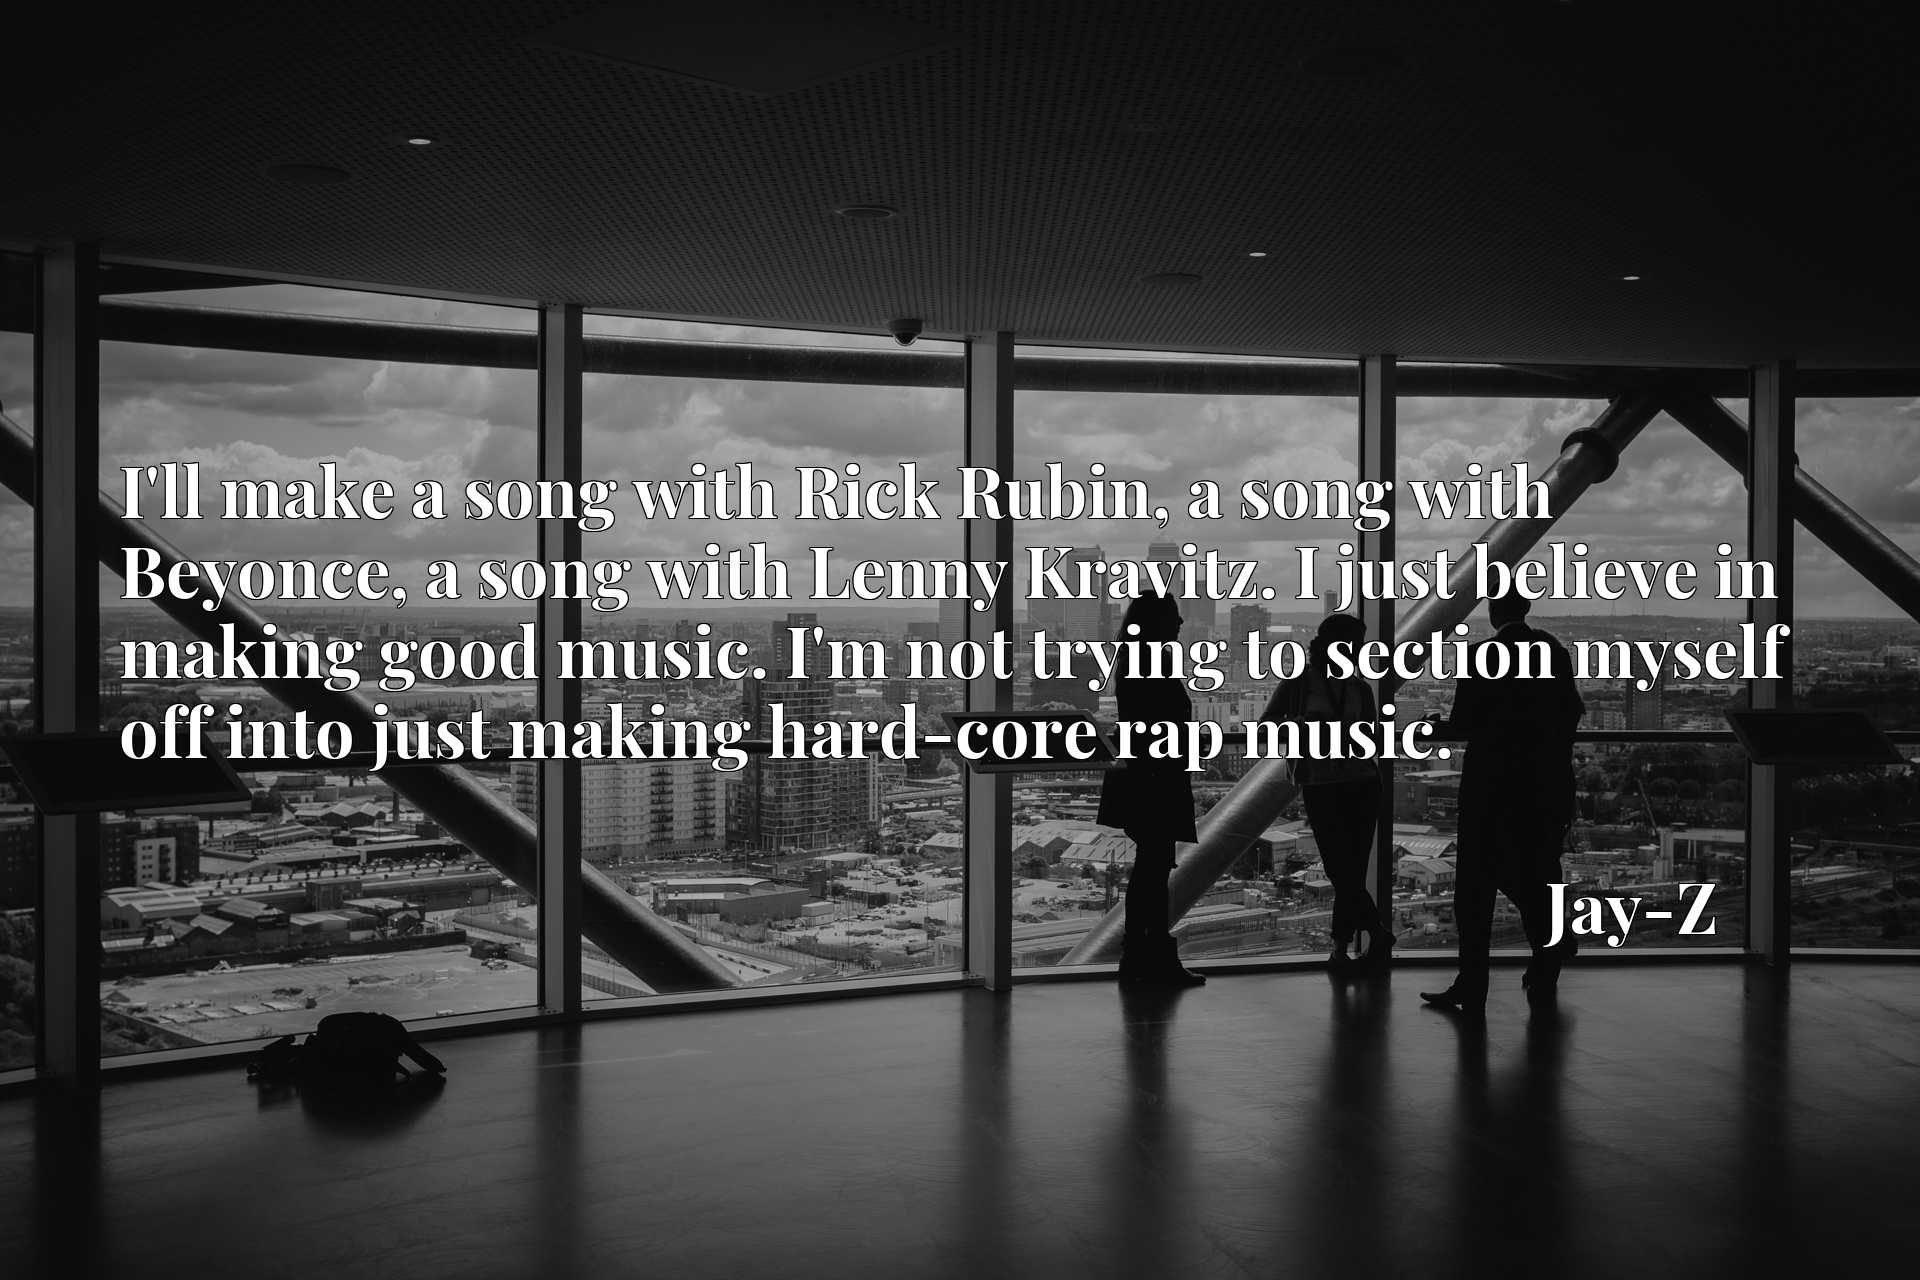 I'll make a song with Rick Rubin, a song with Beyonce, a song with Lenny Kravitz. I just believe in making good music. I'm not trying to section myself off into just making hard-core rap music.